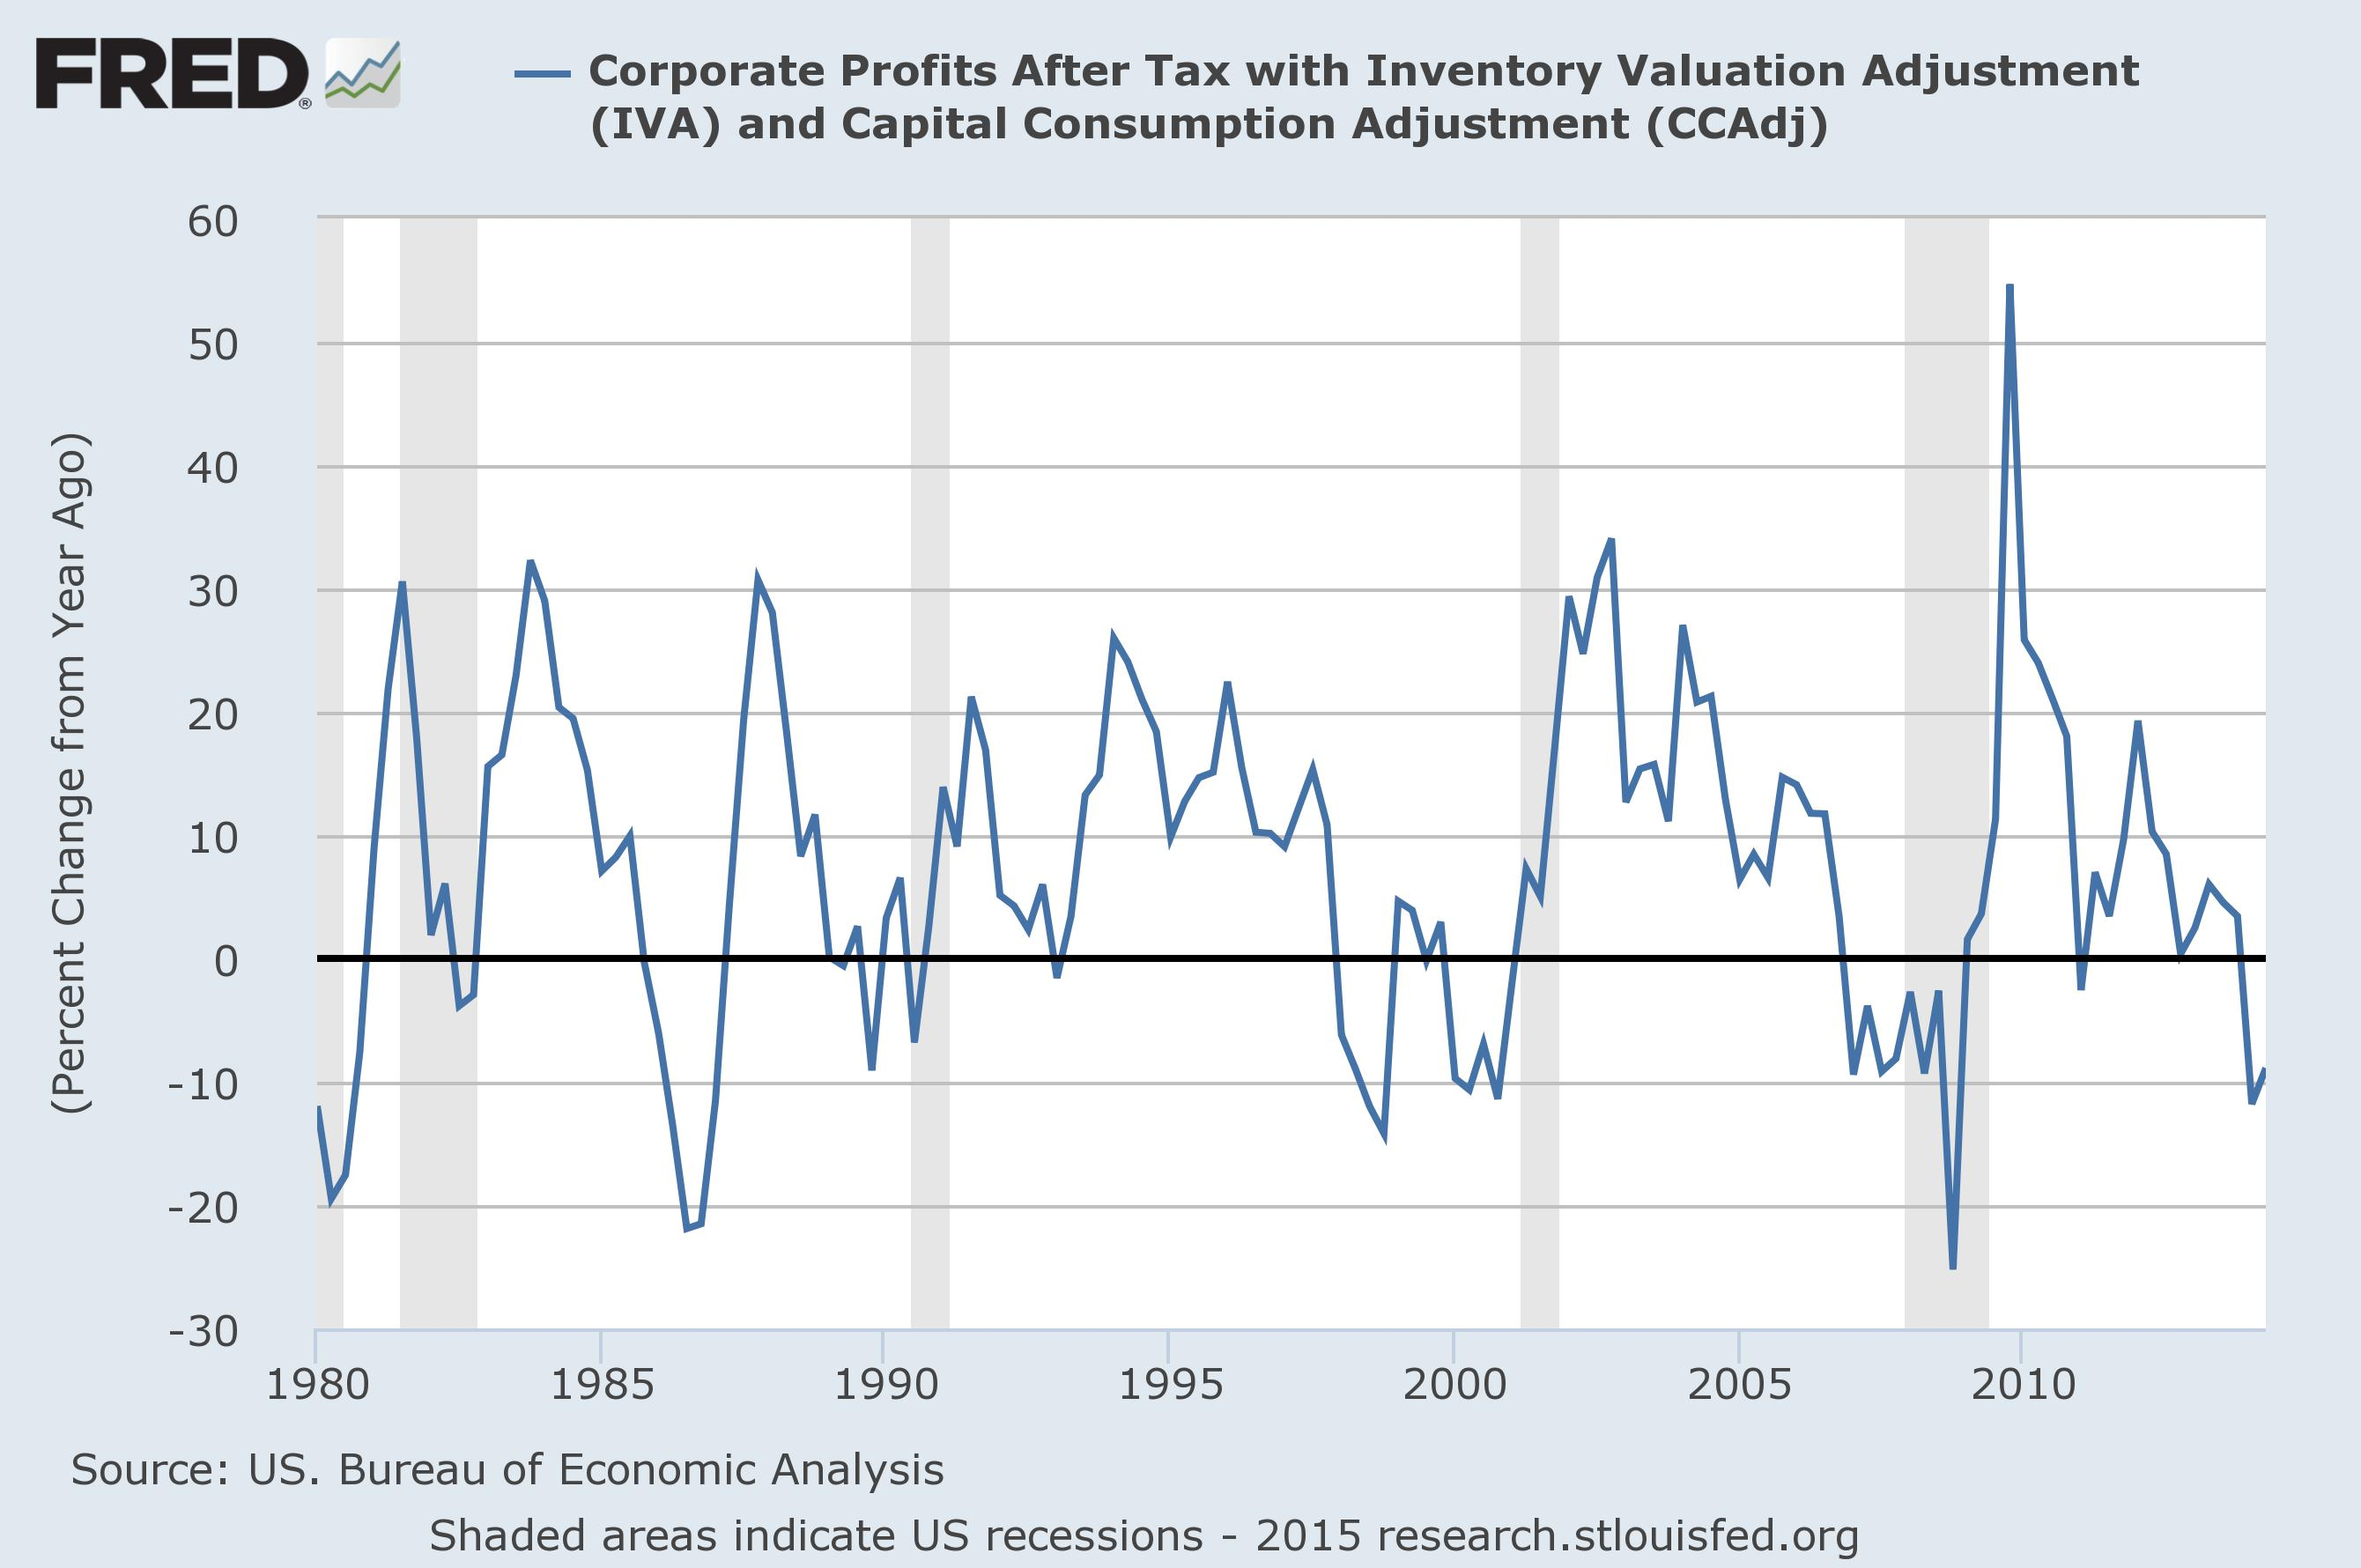 Corporate Profit Growth